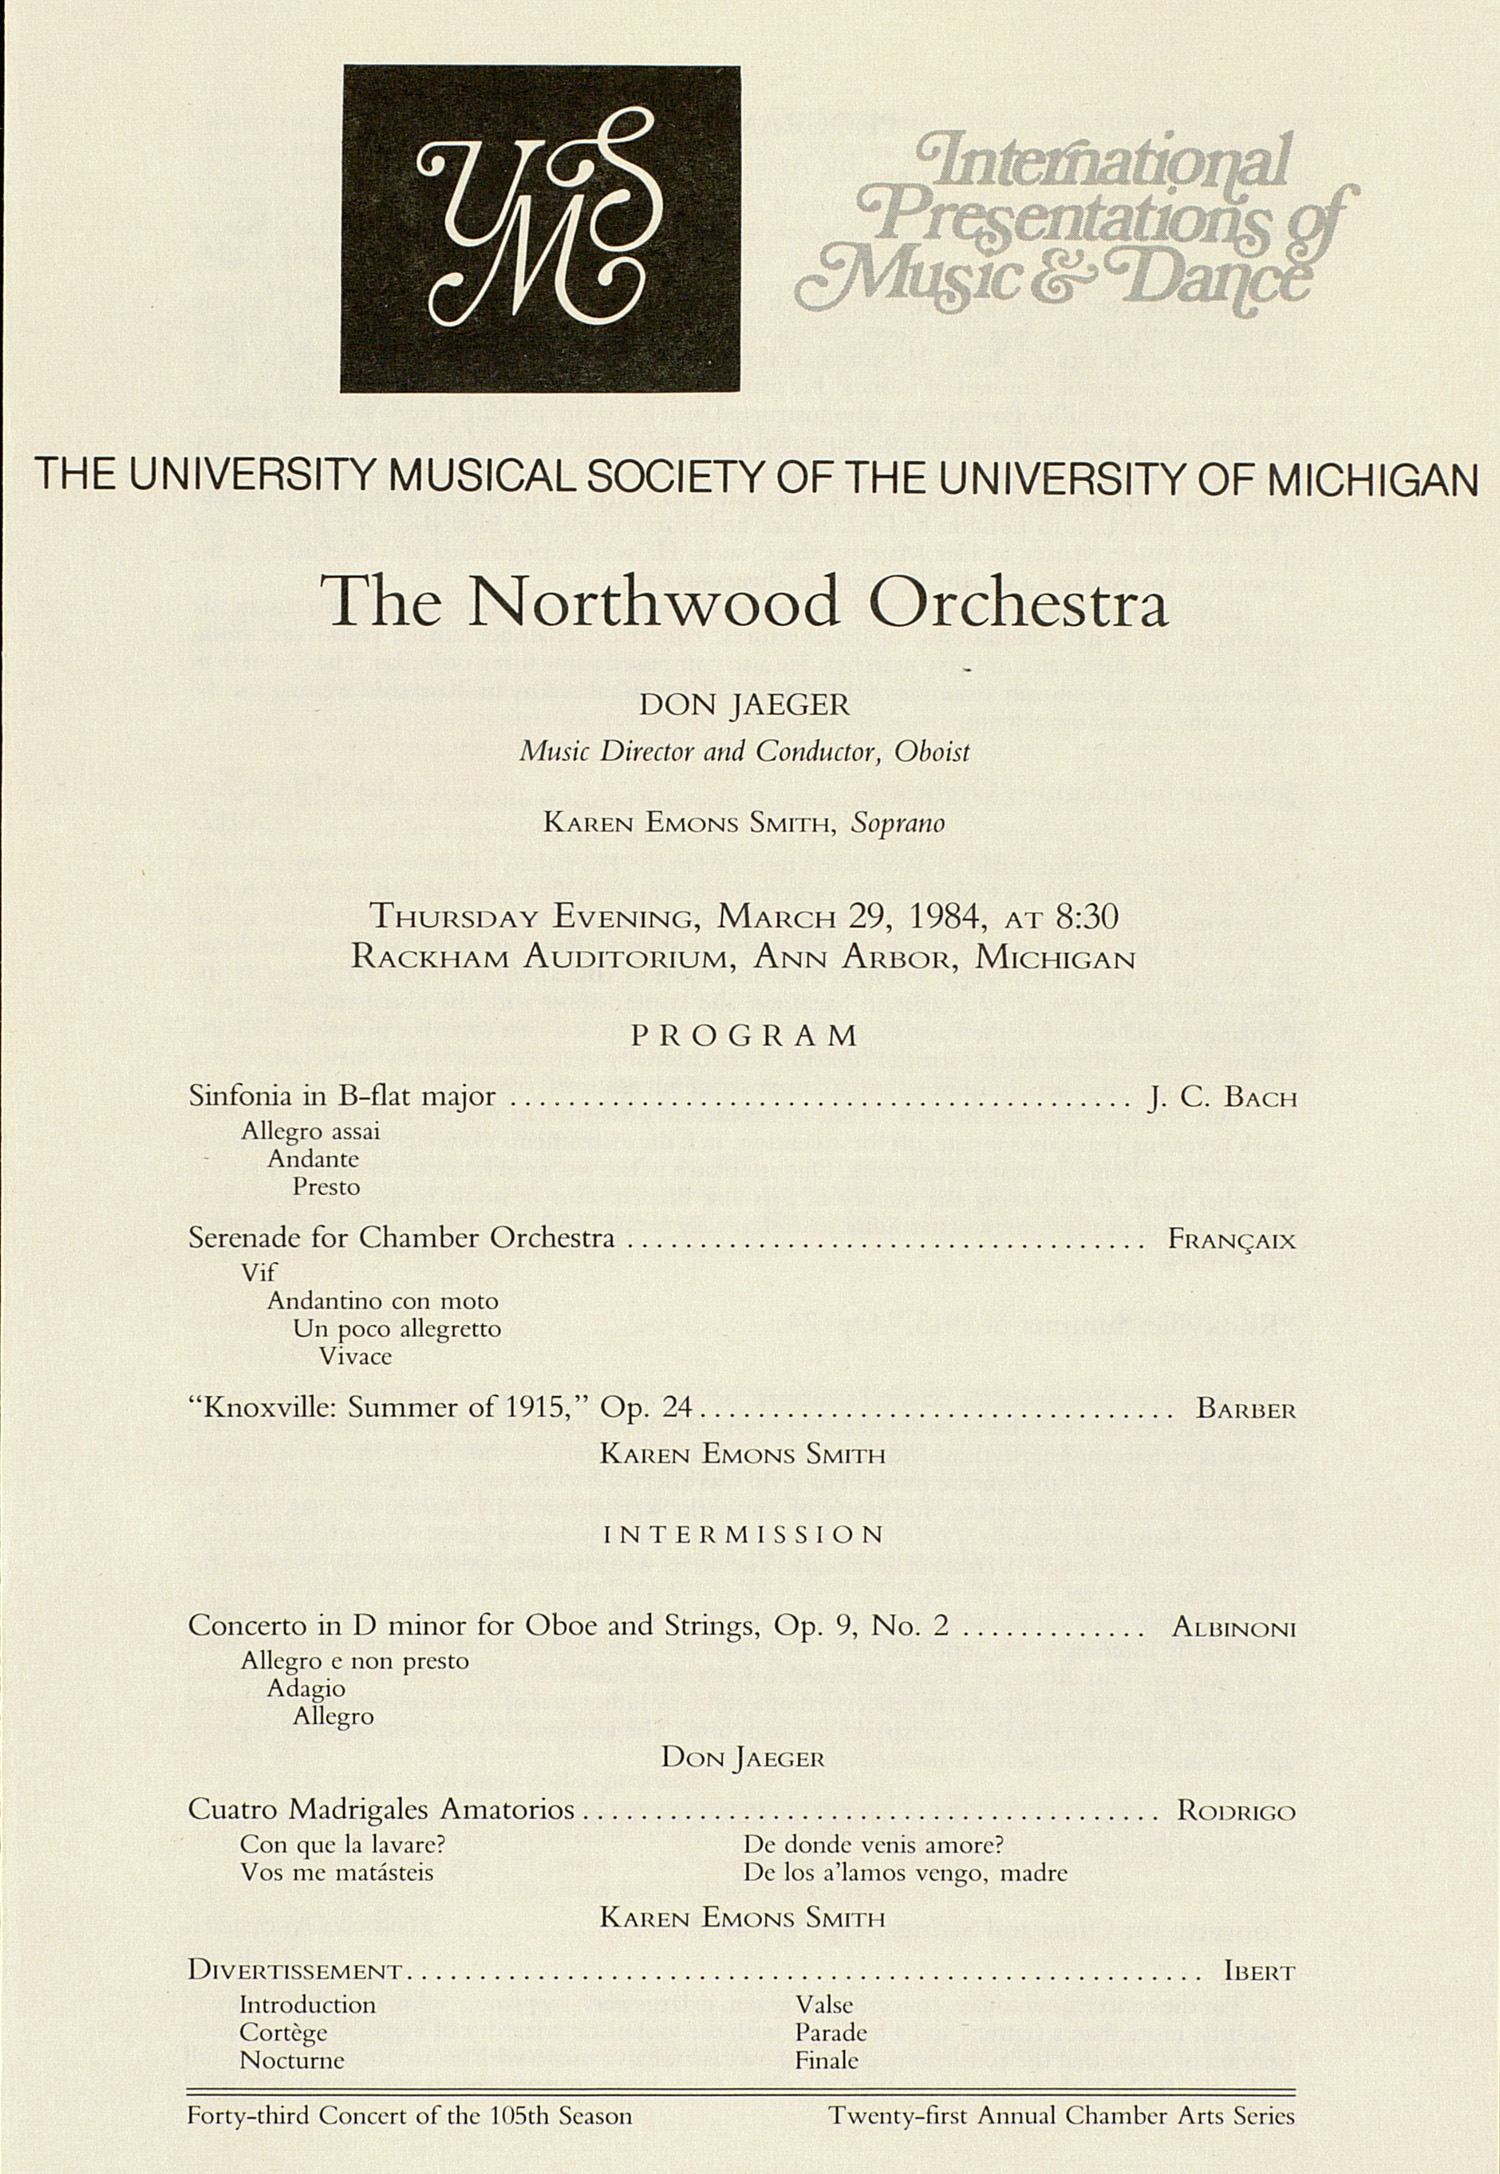 UMS Concert Program, March 29, 1984: International Presentations Of Music & Dance -- The Northwood Orchestra image